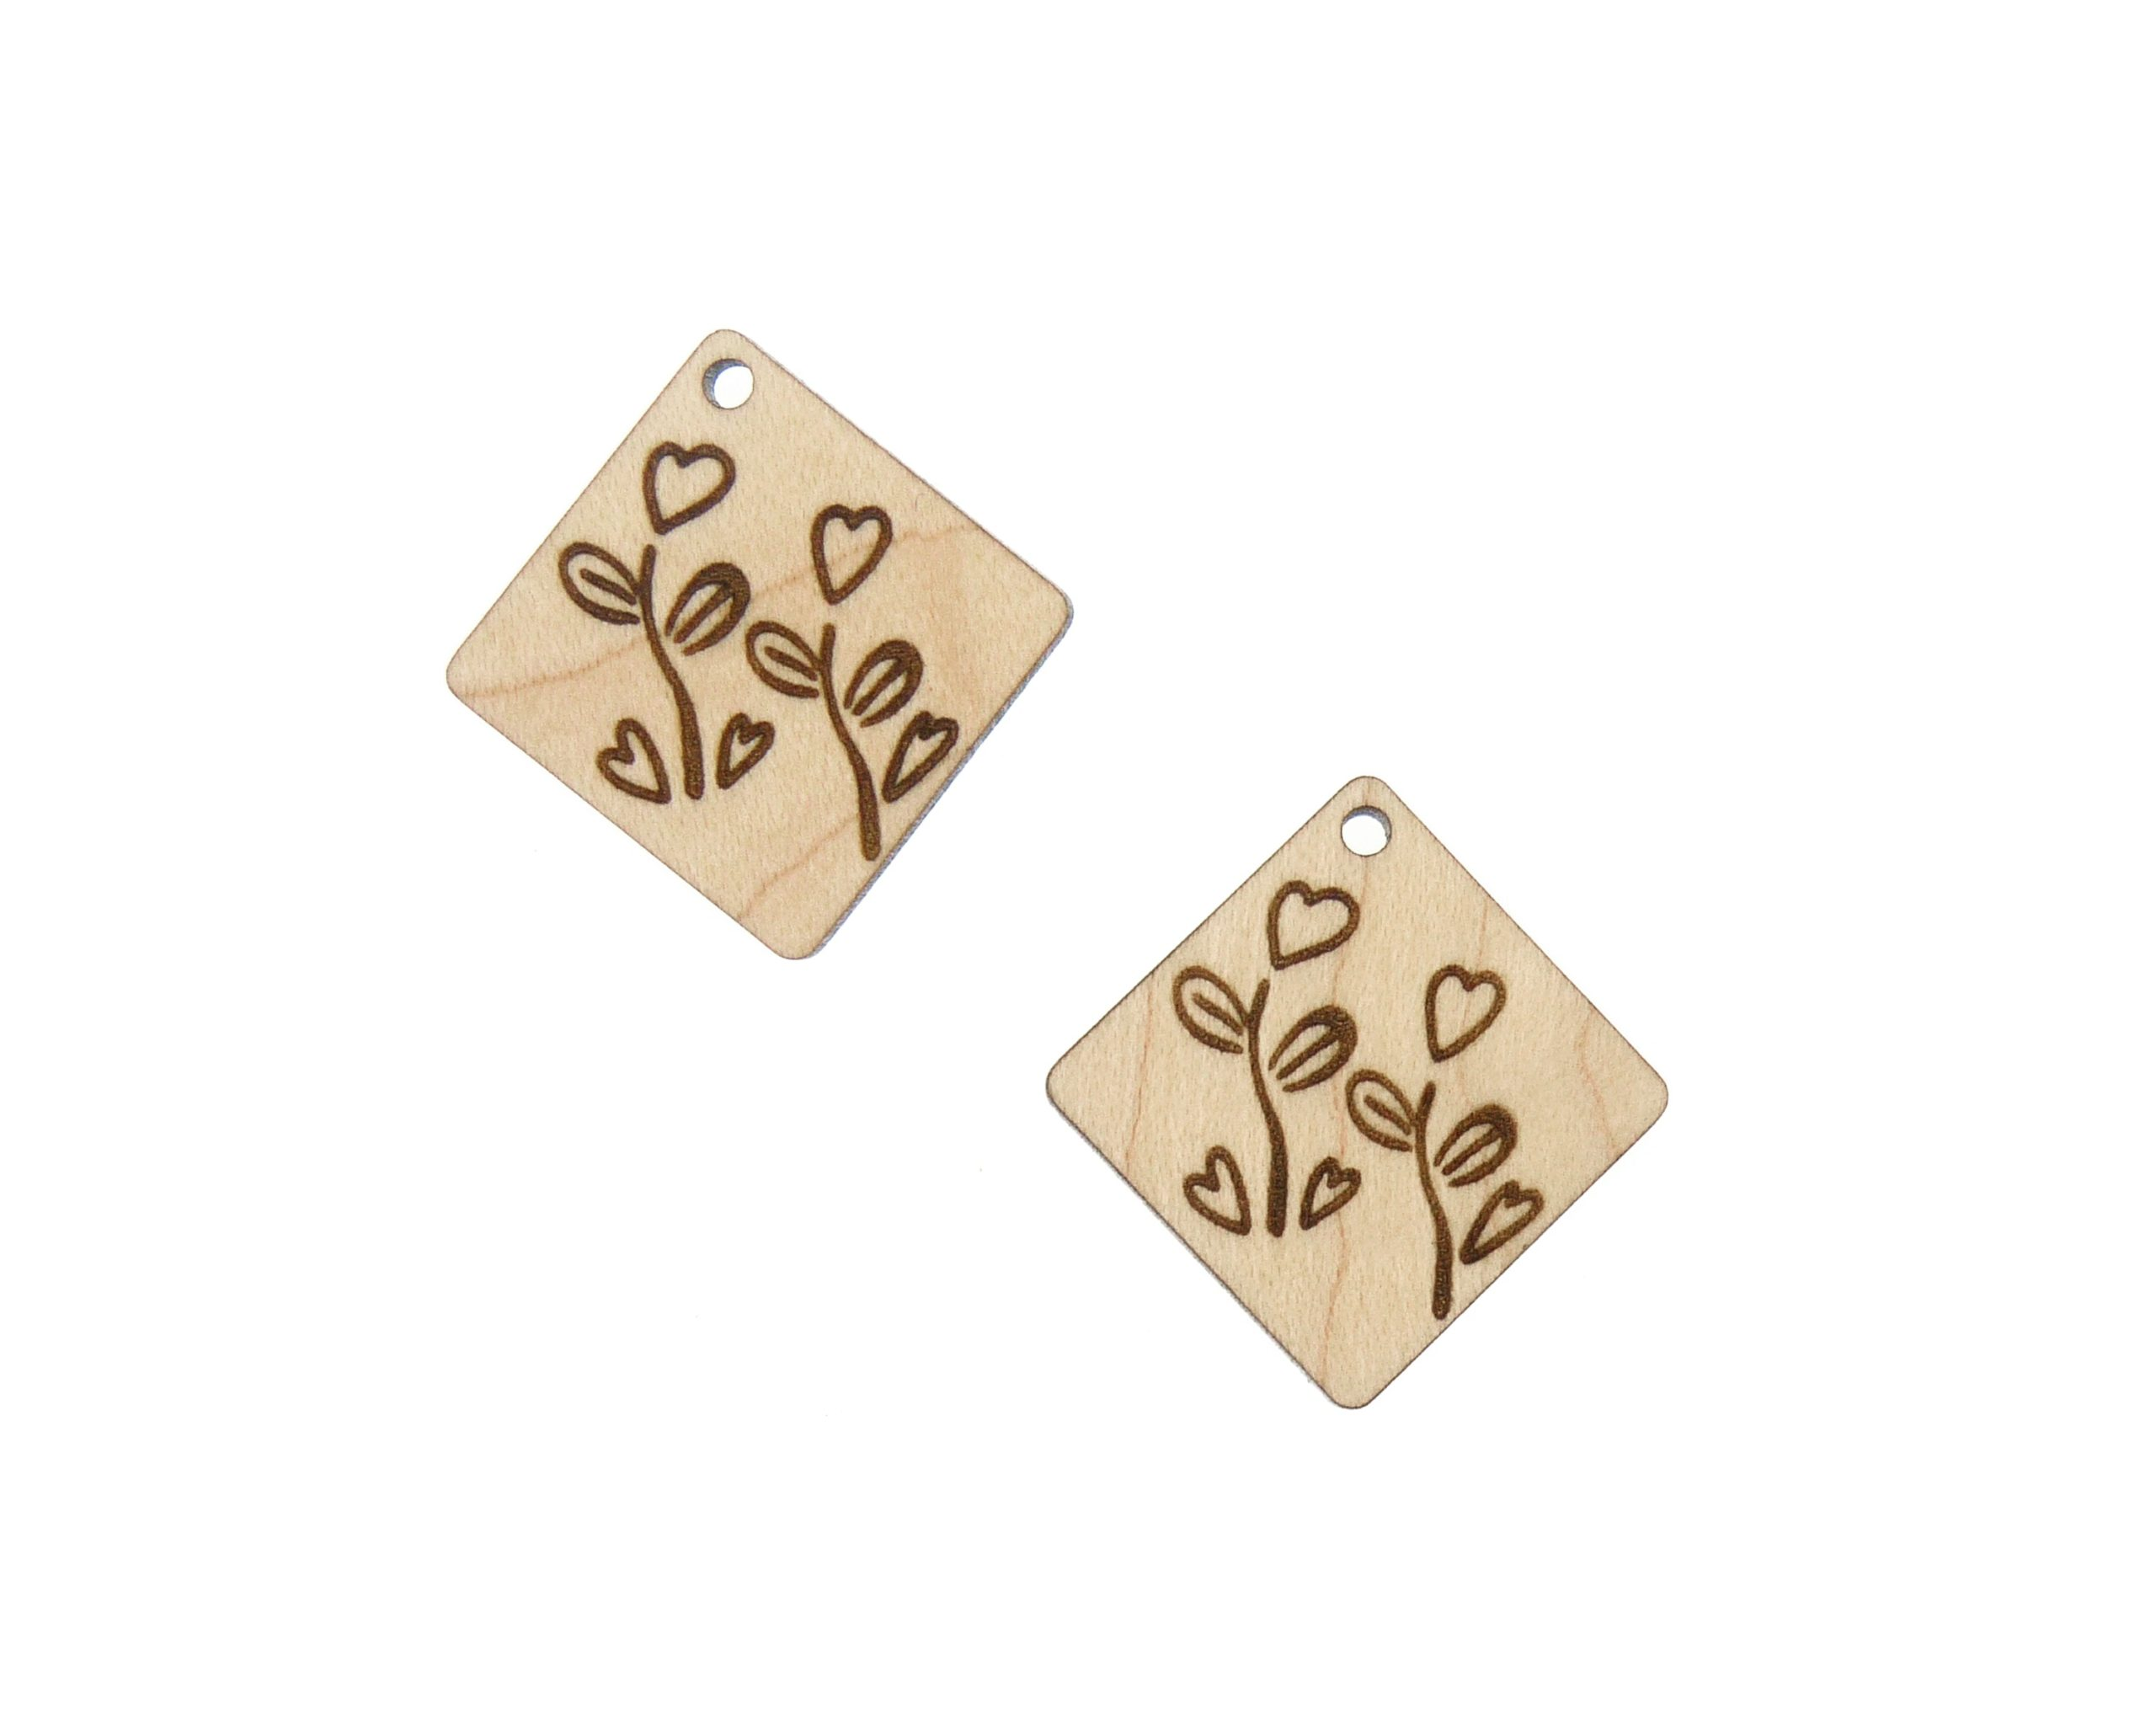 Heart with Garden Flowers Engraved Wood Drop Charms